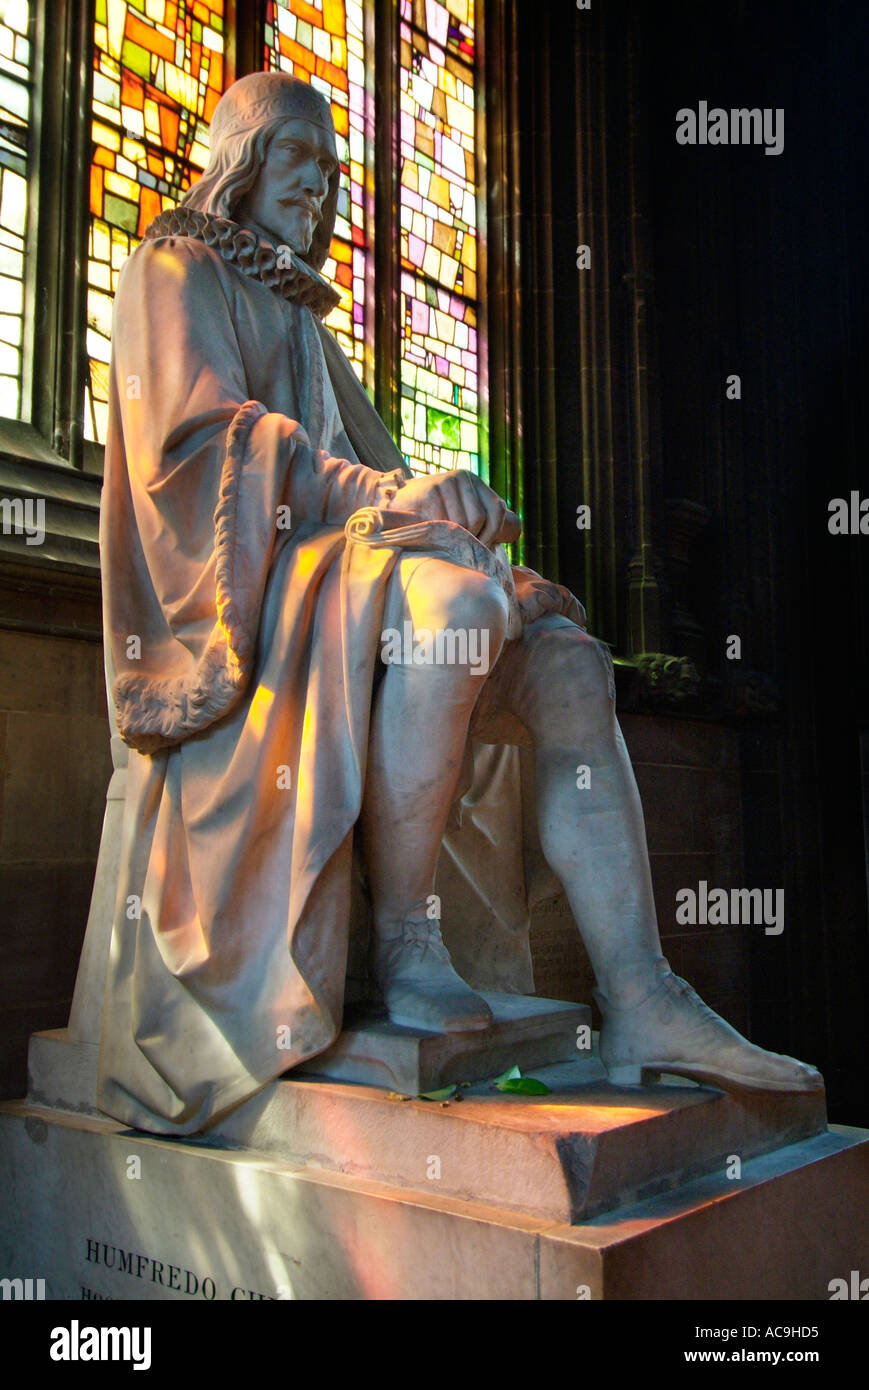 Statue inside Manchester Cathedral City Centre North West UK GB EU Europe - Stock Image